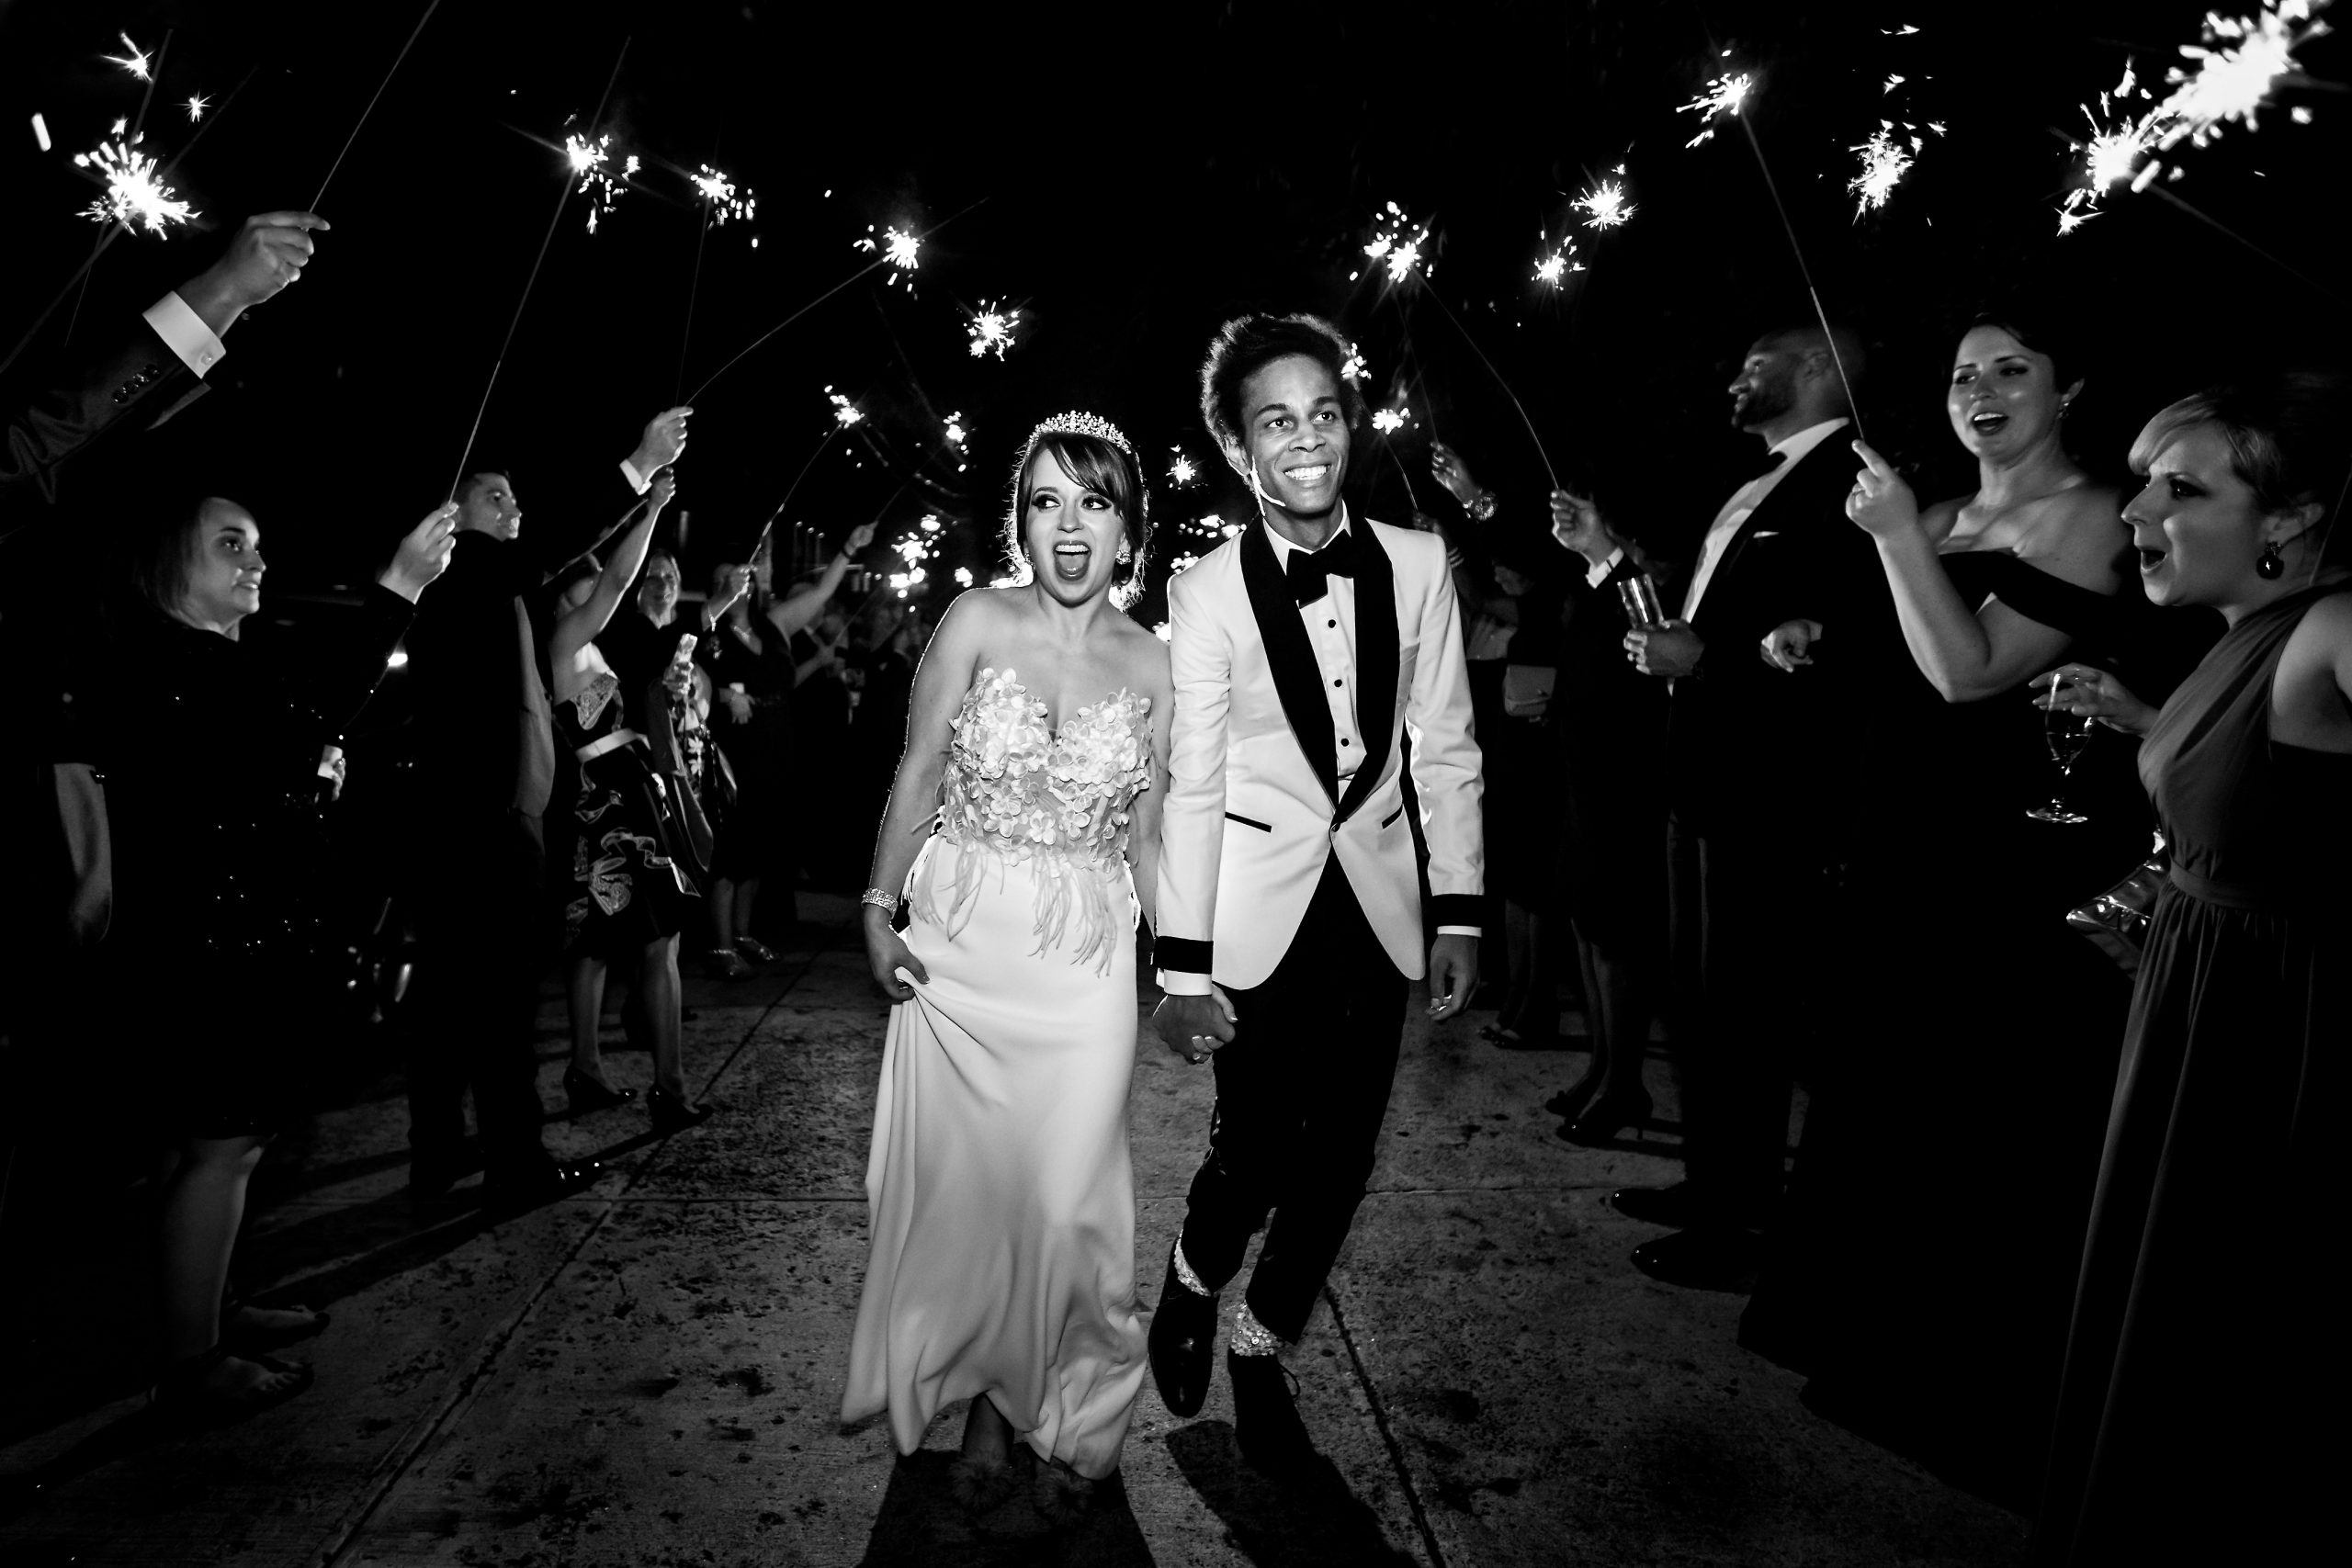 Newlyweds make their entrance to the party